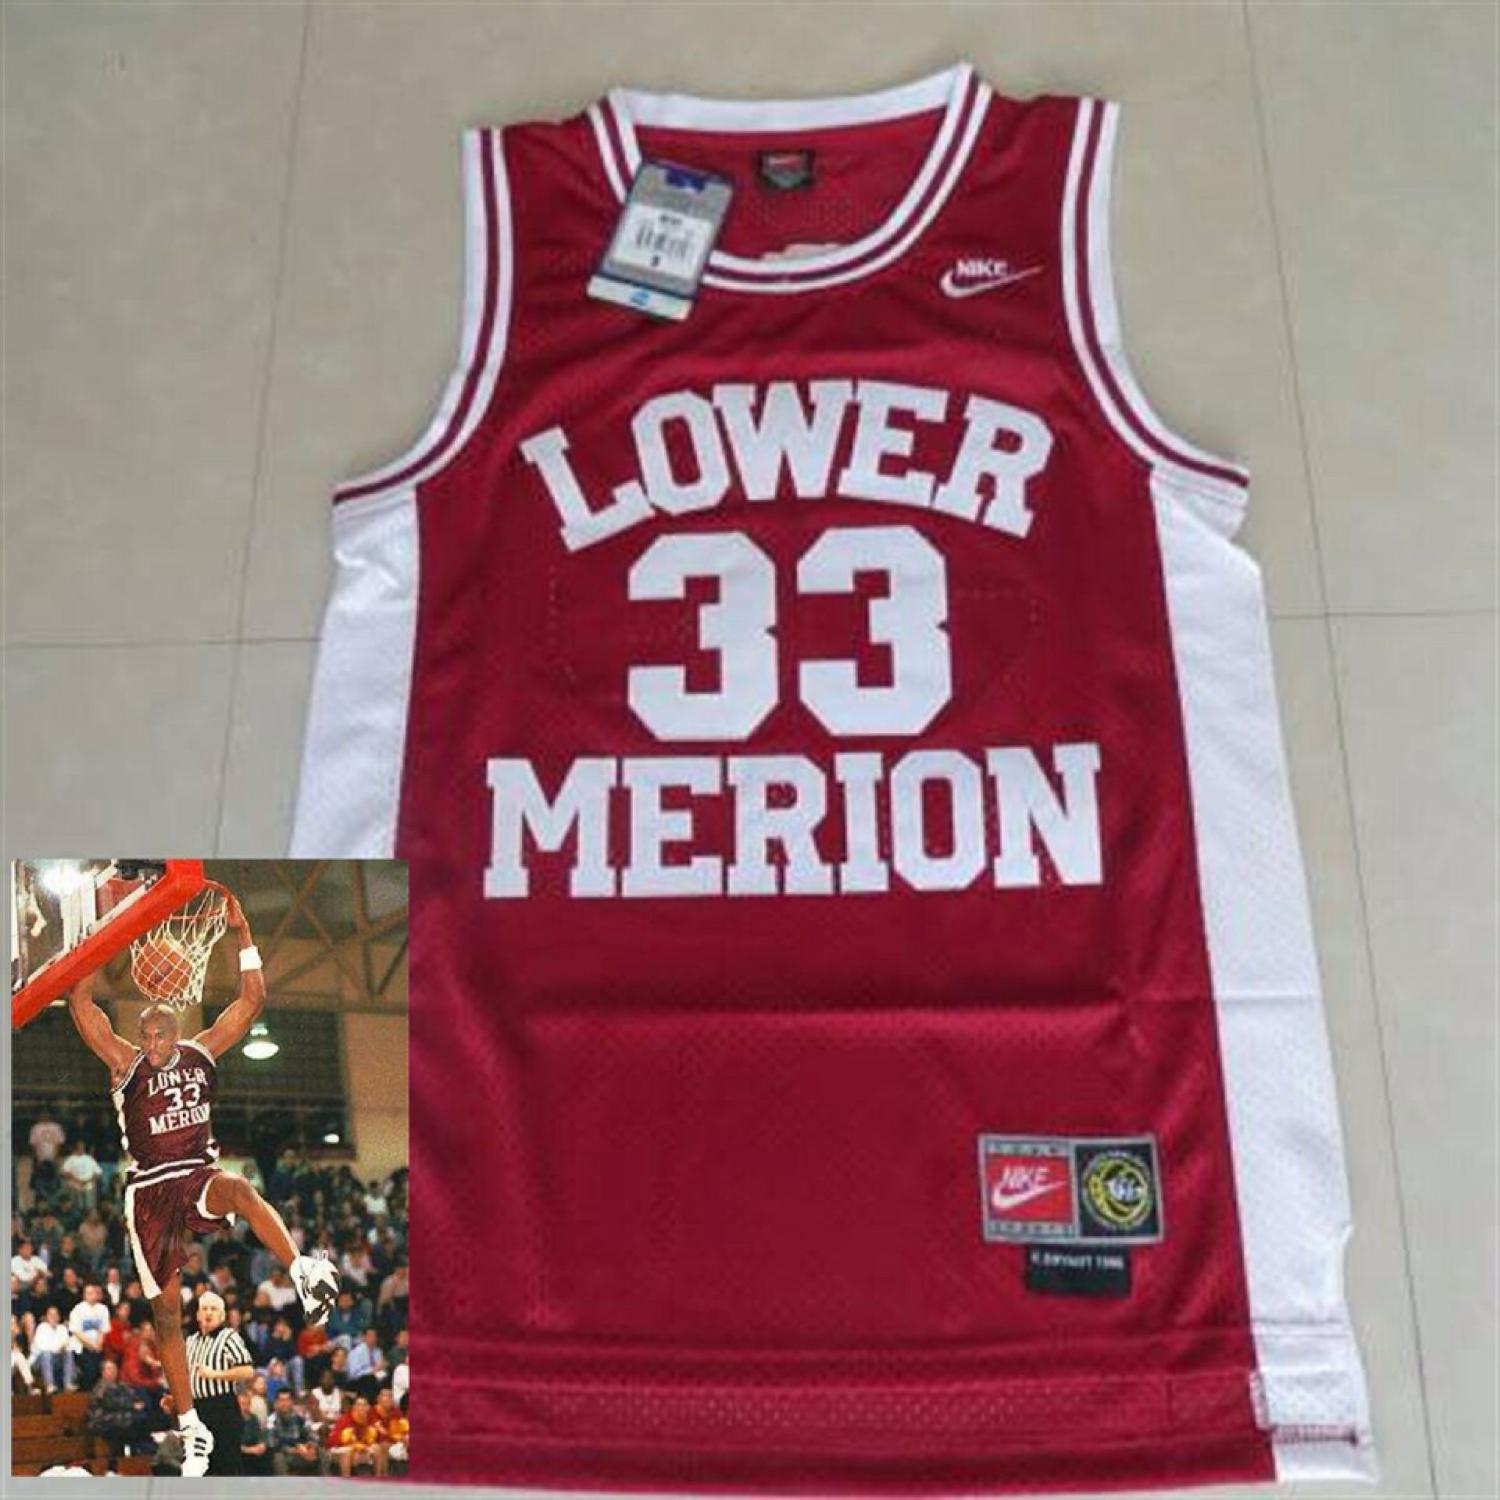 wholesale dealer 6b091 3aaa2 Nike Kobe Bryant lower merion (high school) jersey, size 3xl, it does not  come with tags but still barely worn as shown here or best offer